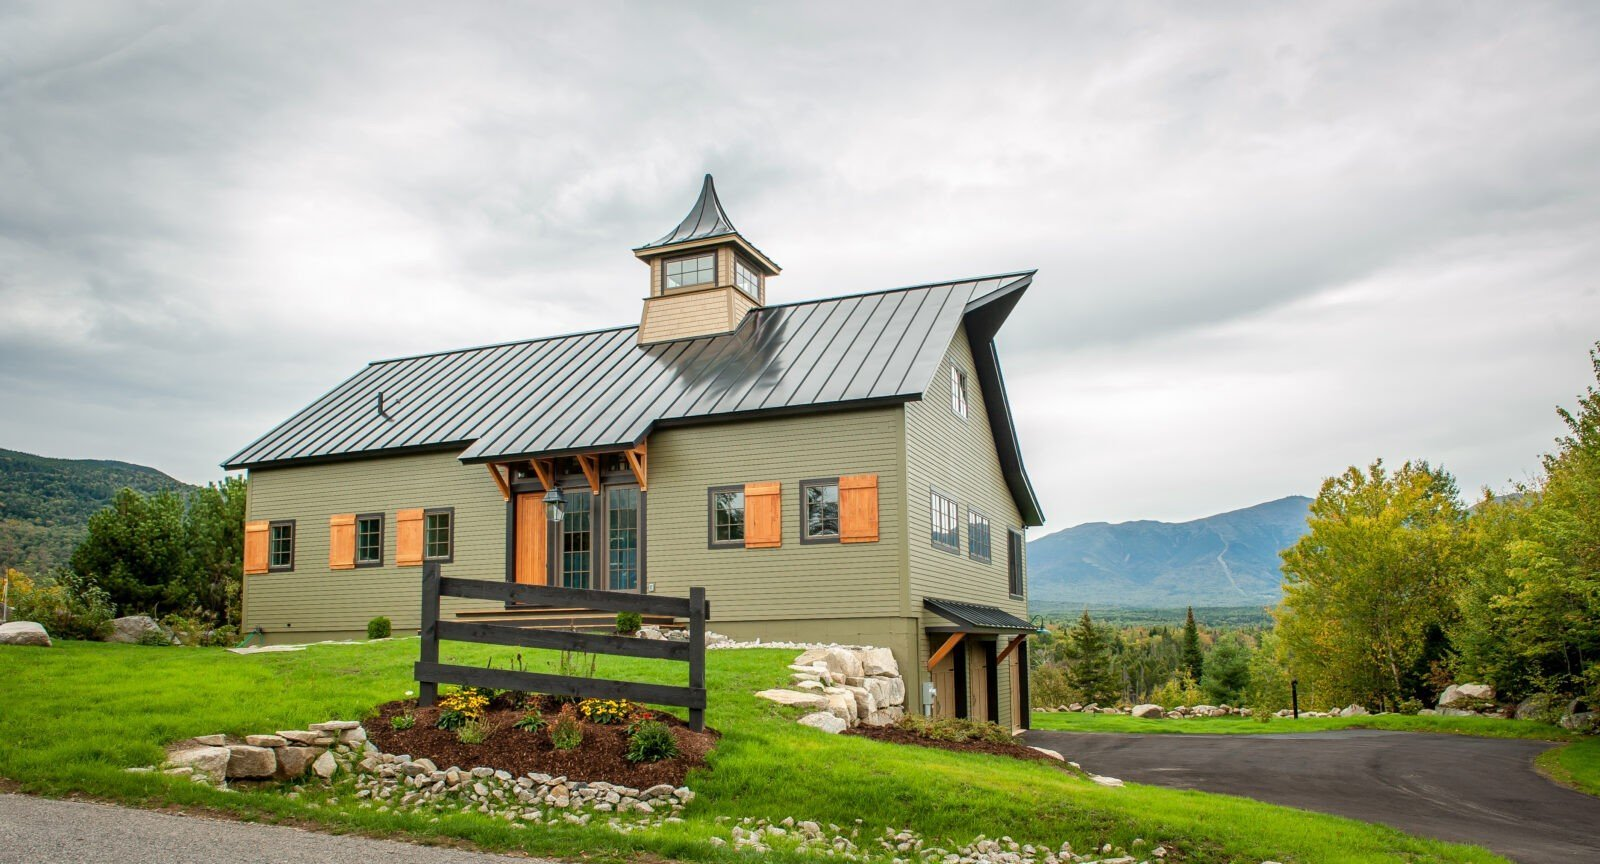 Top notch barn home plans from the ybh design team for Barn type homes